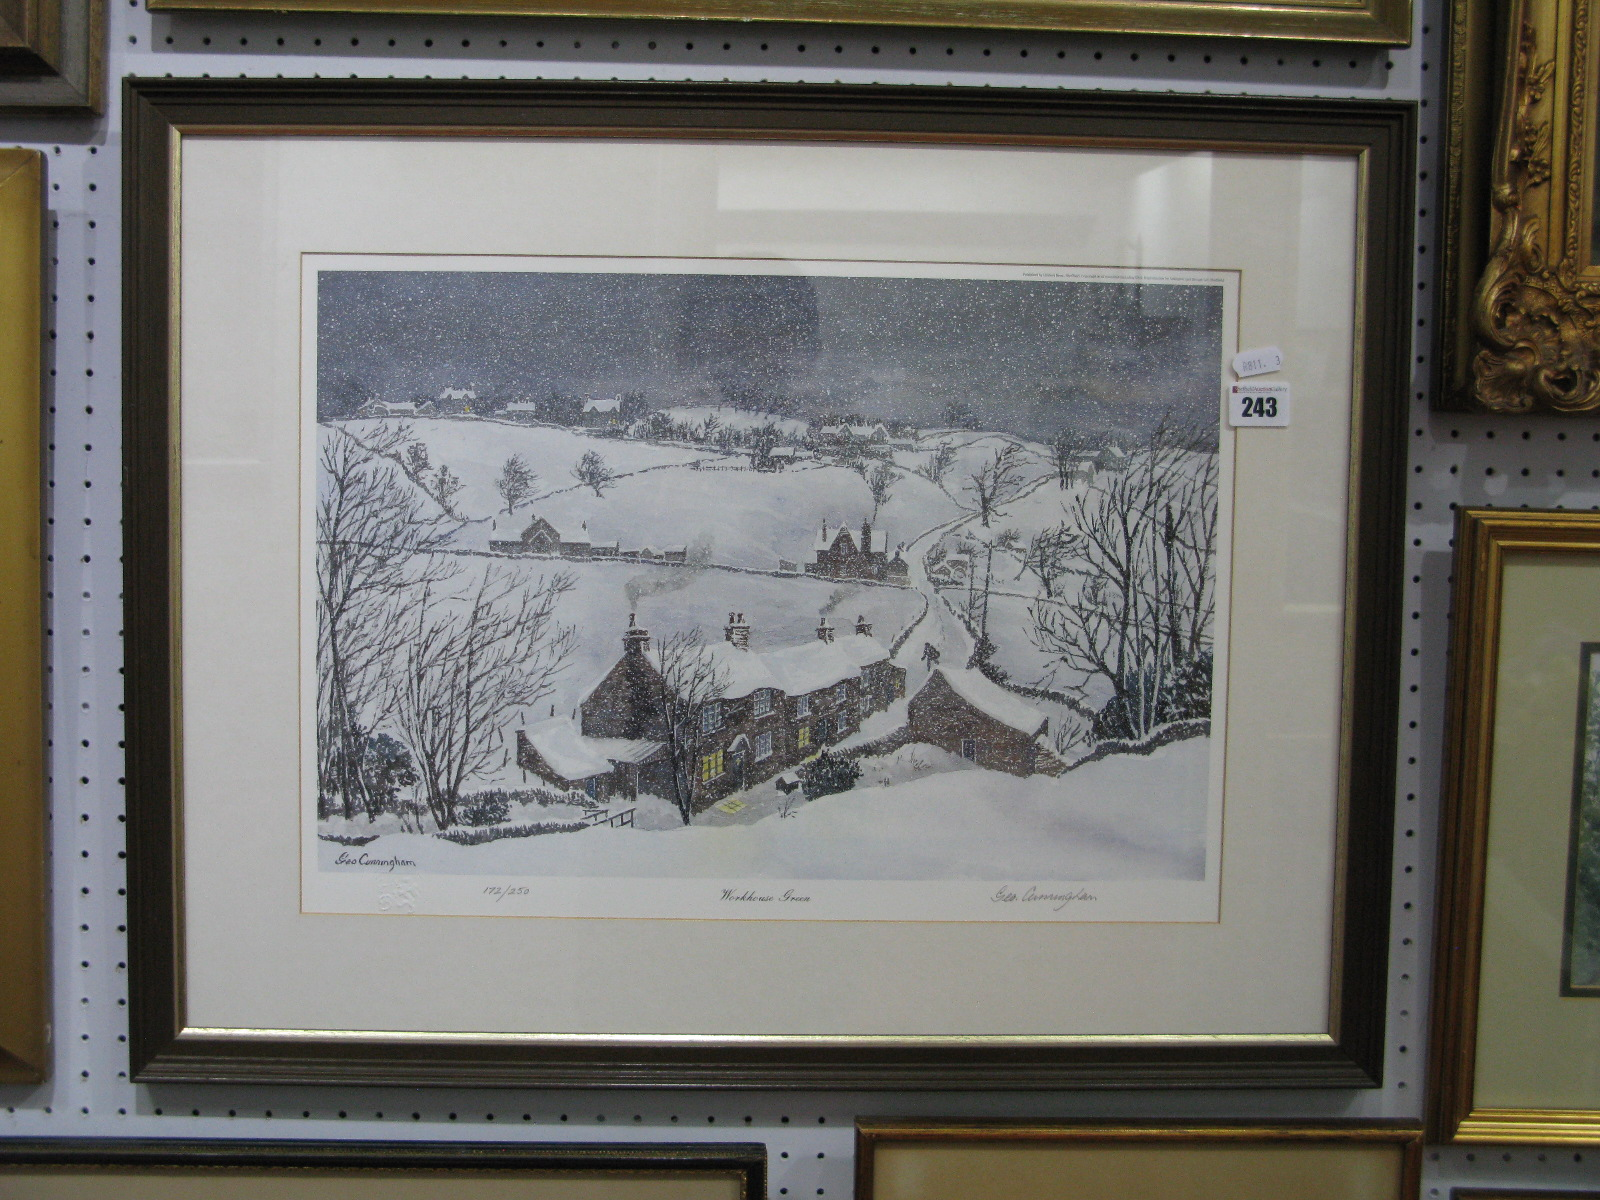 Lot 243 - George Cunningham 'Workhouse Green' Limited Editon Colour Print of 250, graphite signed, blind